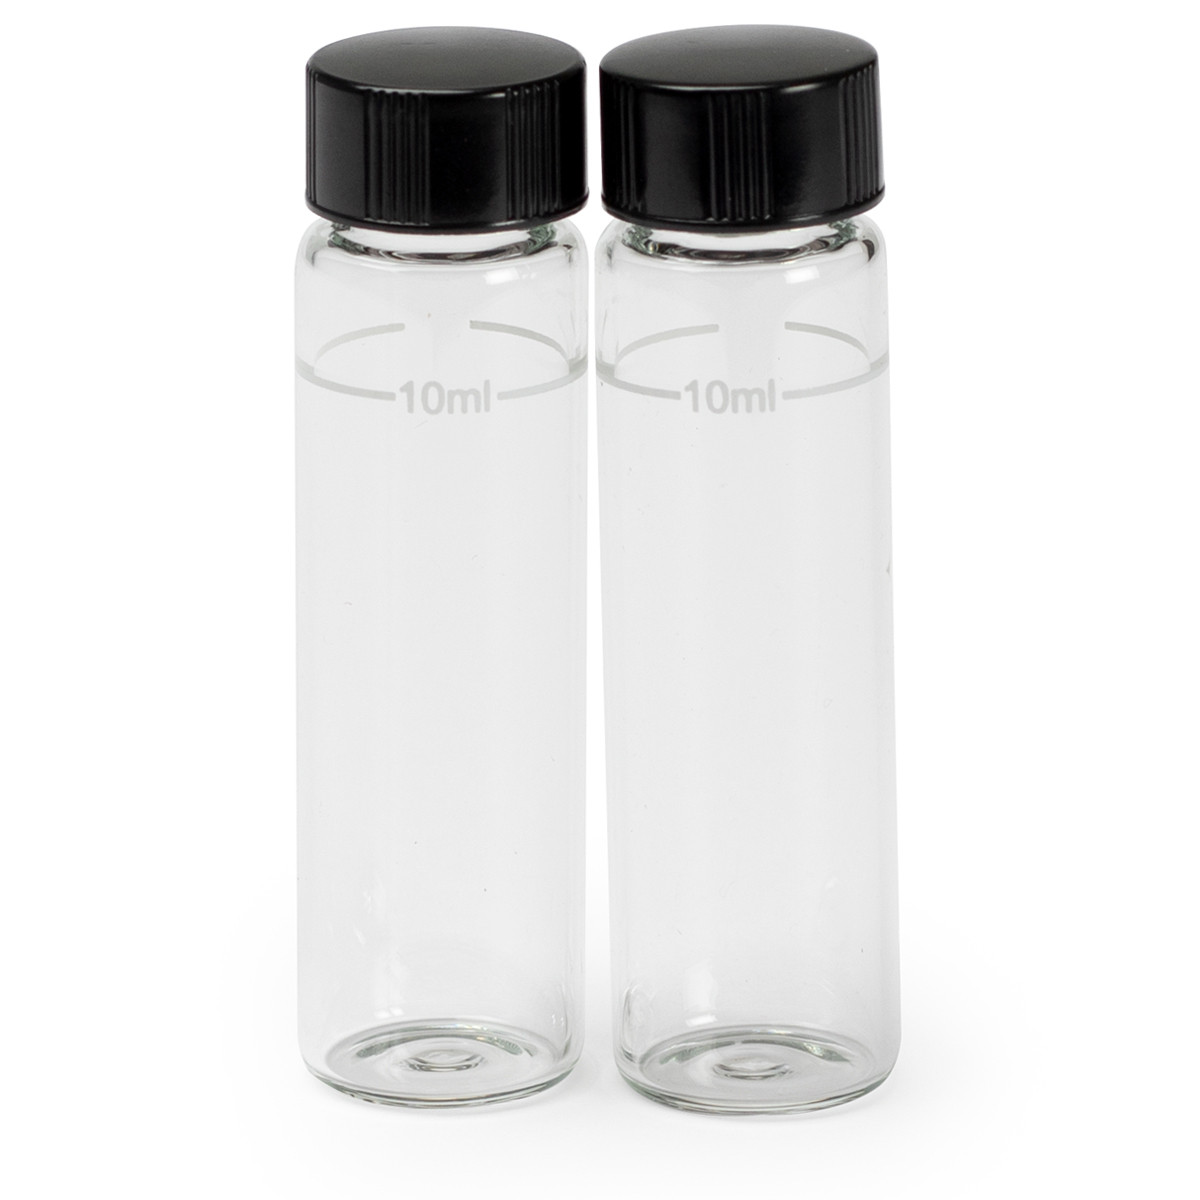 Glass Cuvettes and Caps for Checker HC Colorimeters (set of 2)